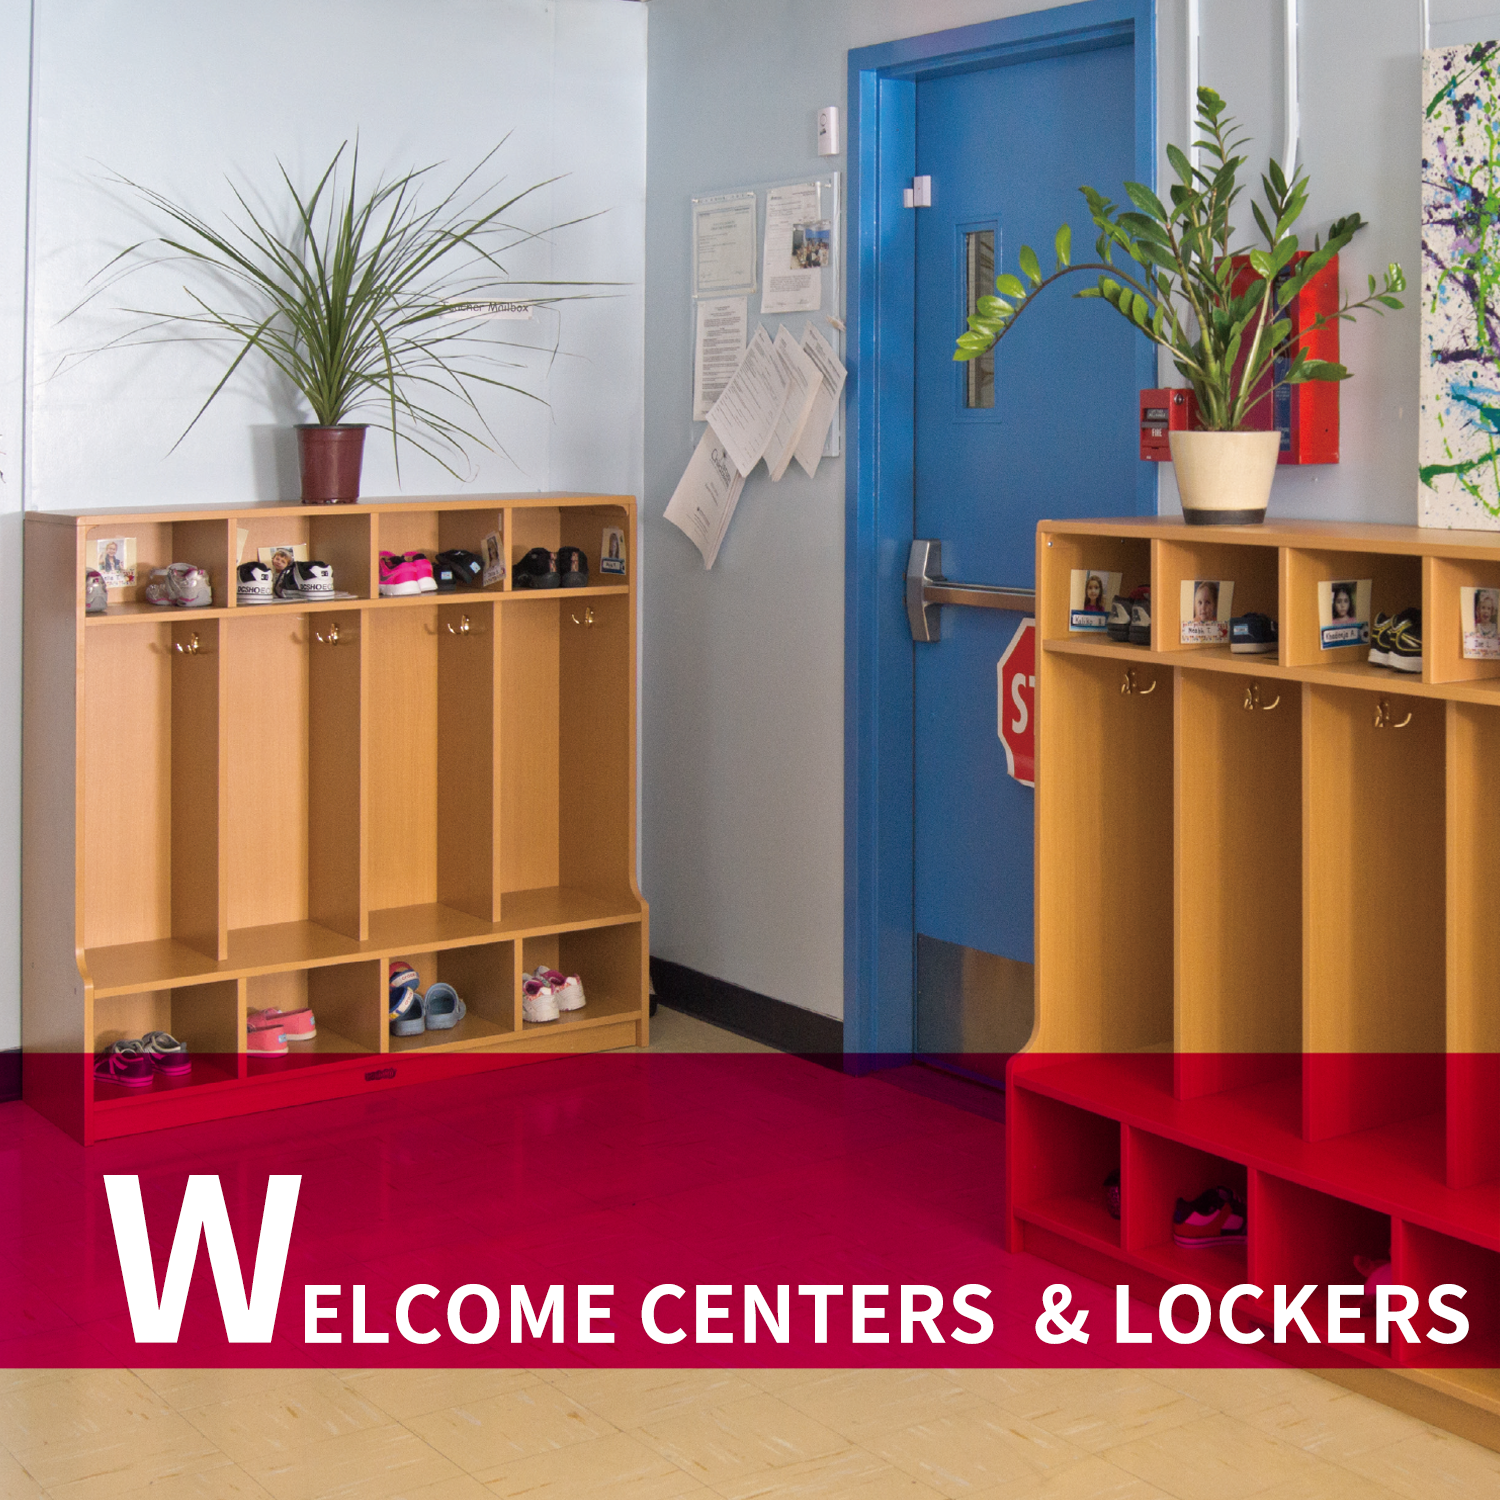 Welcome Centers & Lockers